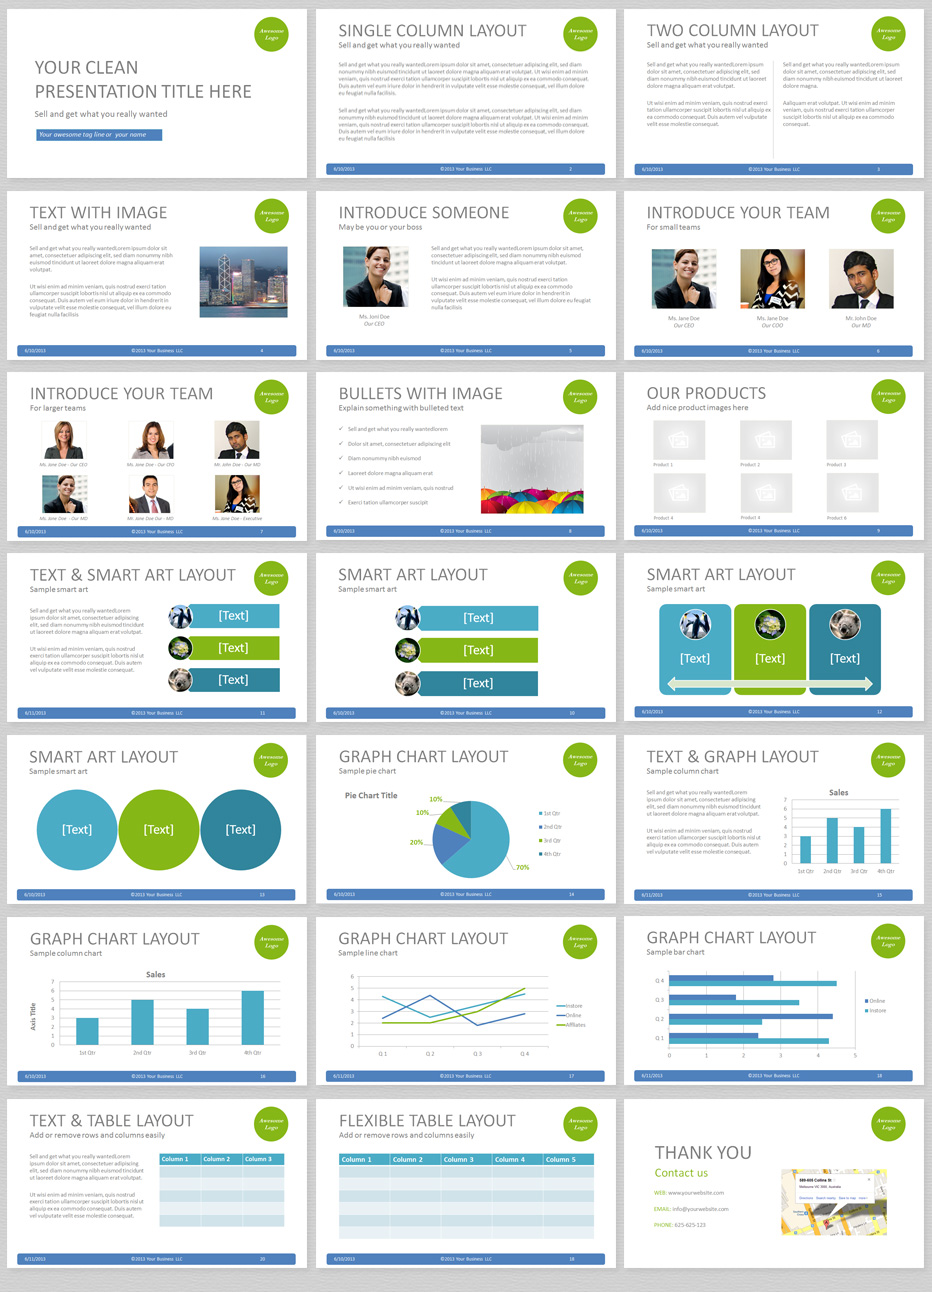 walmart powerpoint template - powerpoint backgrounds technology white